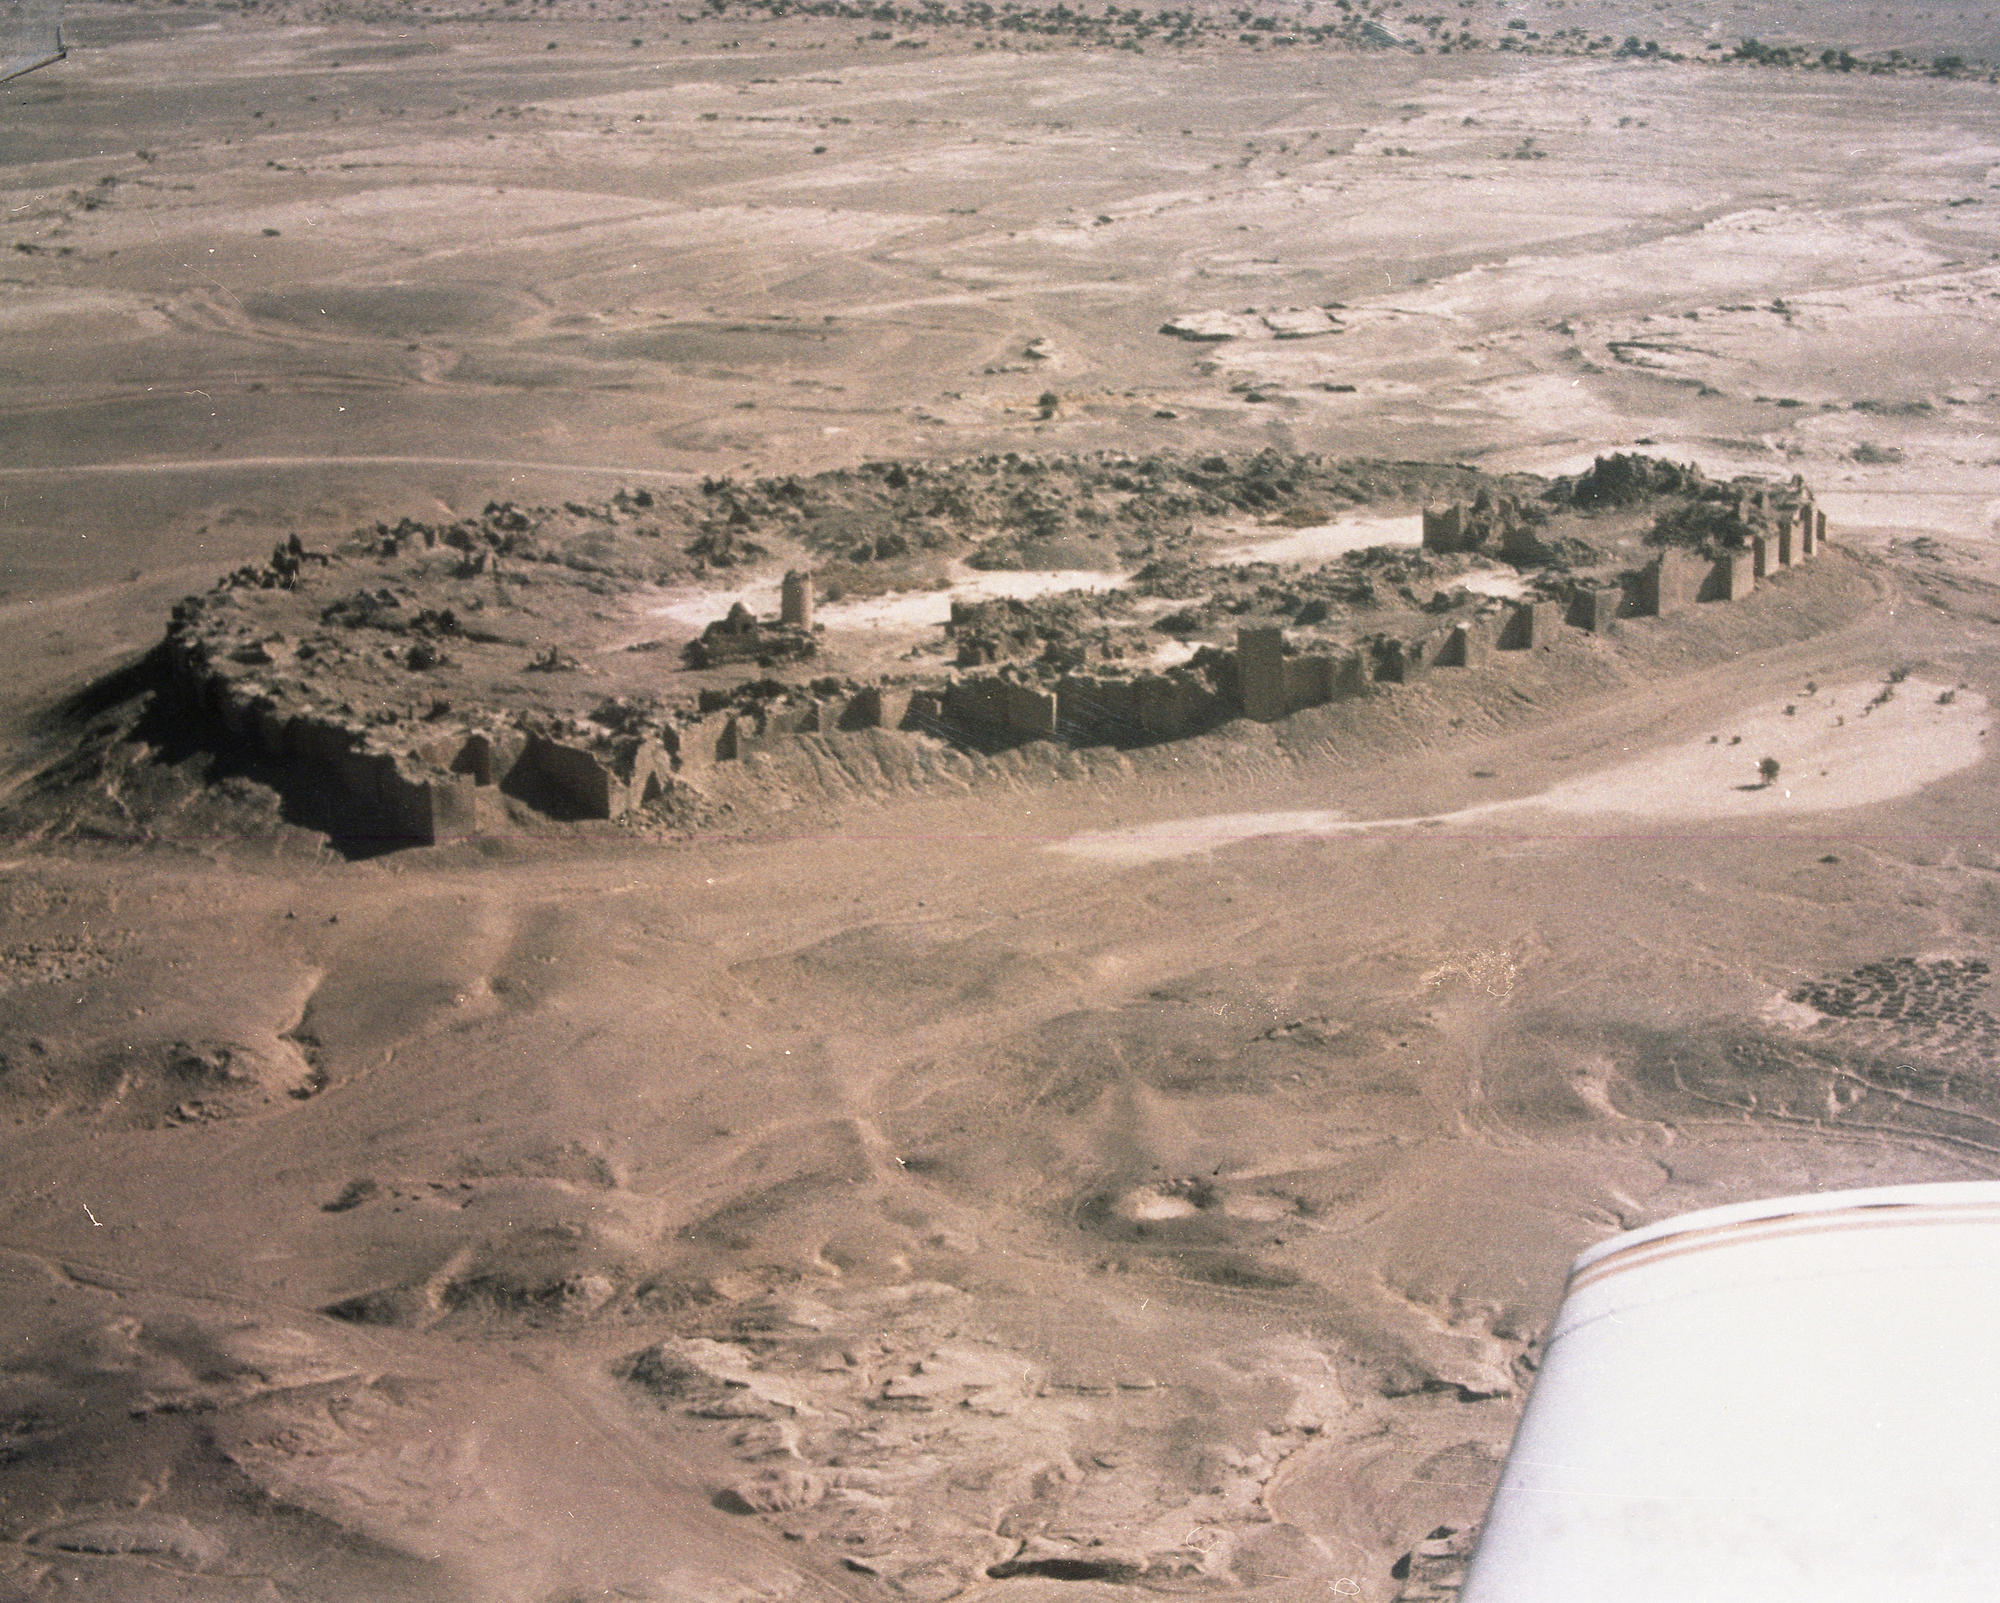 Aerial view of Baraqish